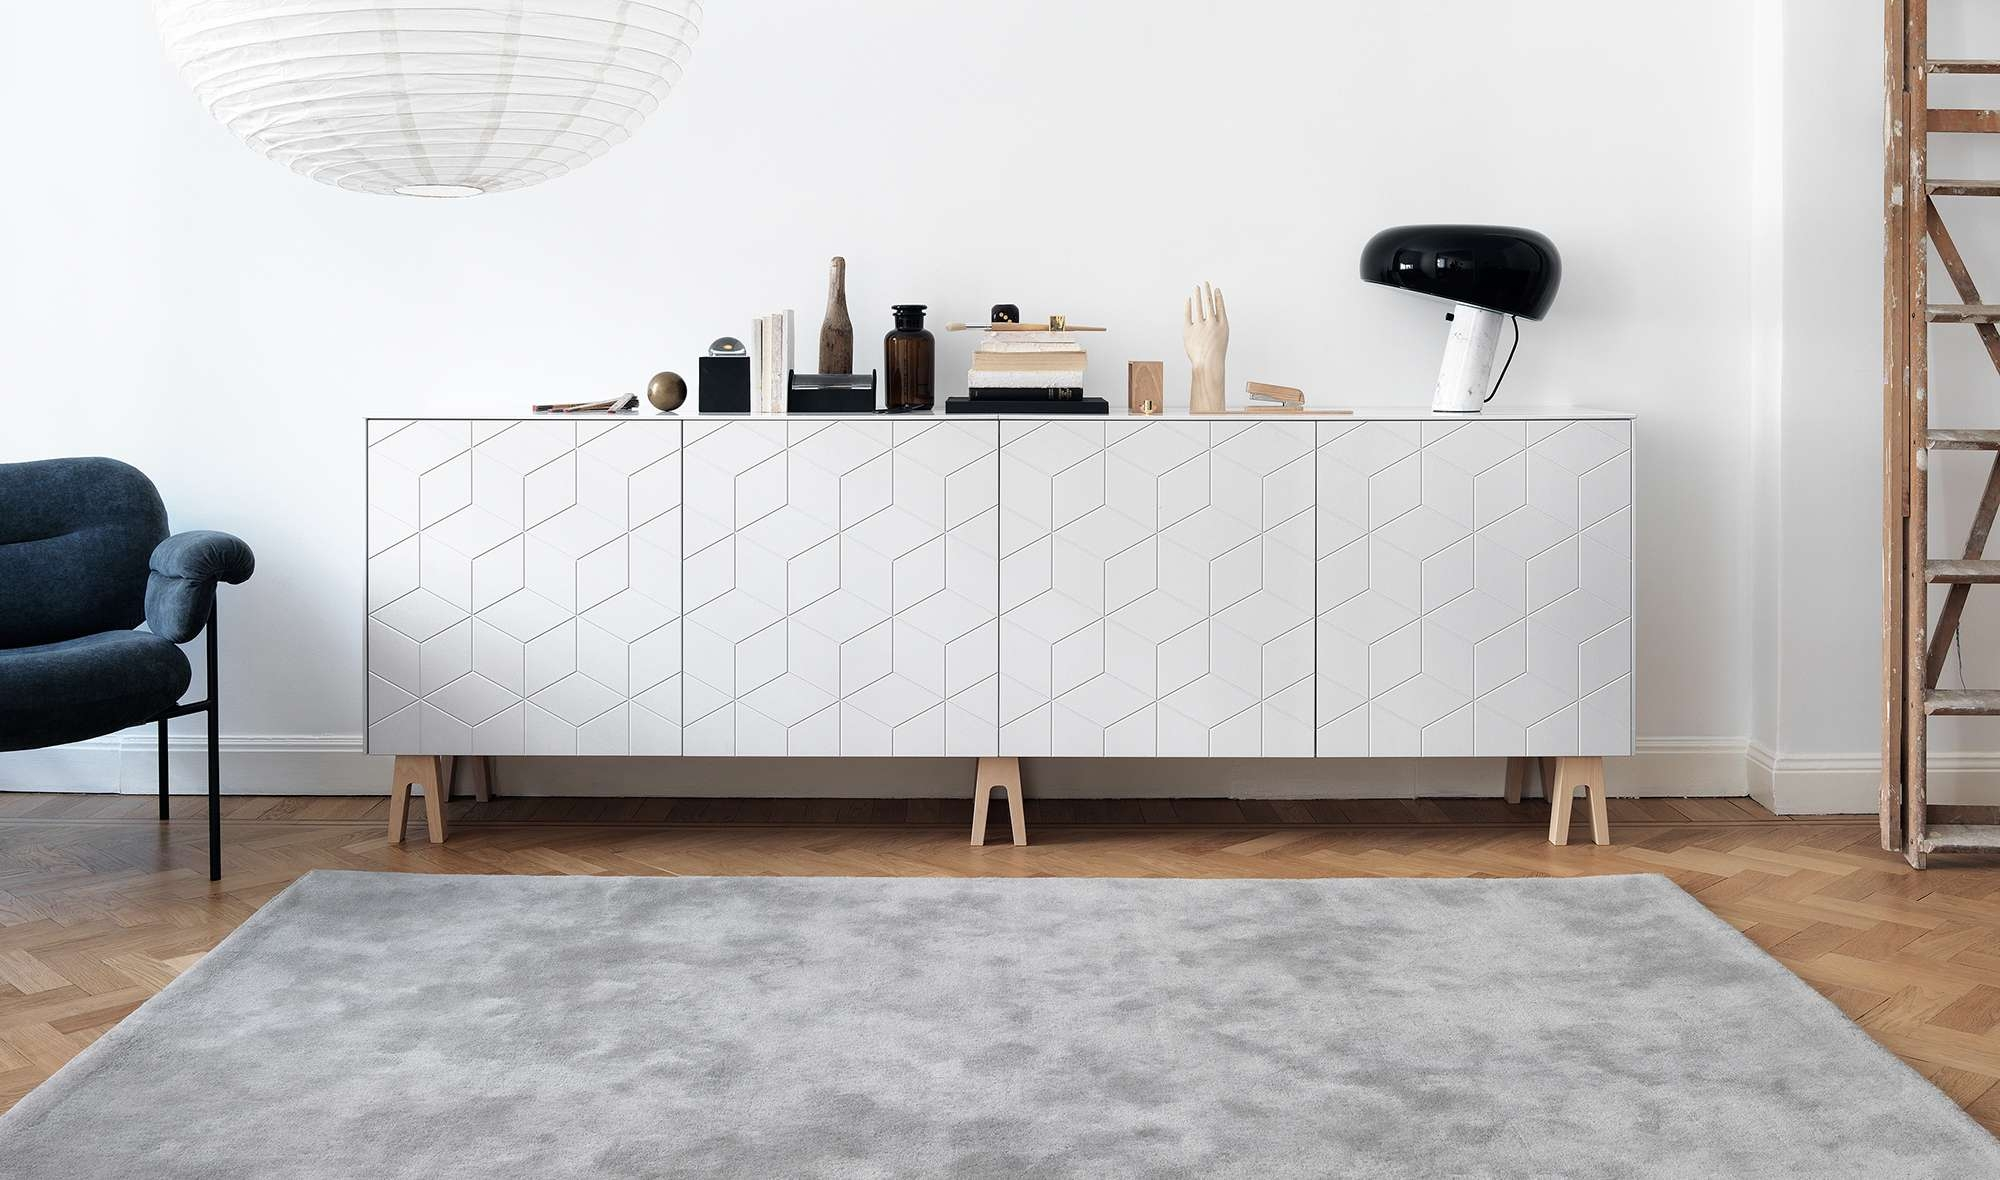 Uncategorized : Ehrfürchtiges Ikea Besta Inspiration Ebenfalls With Regard To Ikea Besta Sideboards (Gallery 3 of 20)